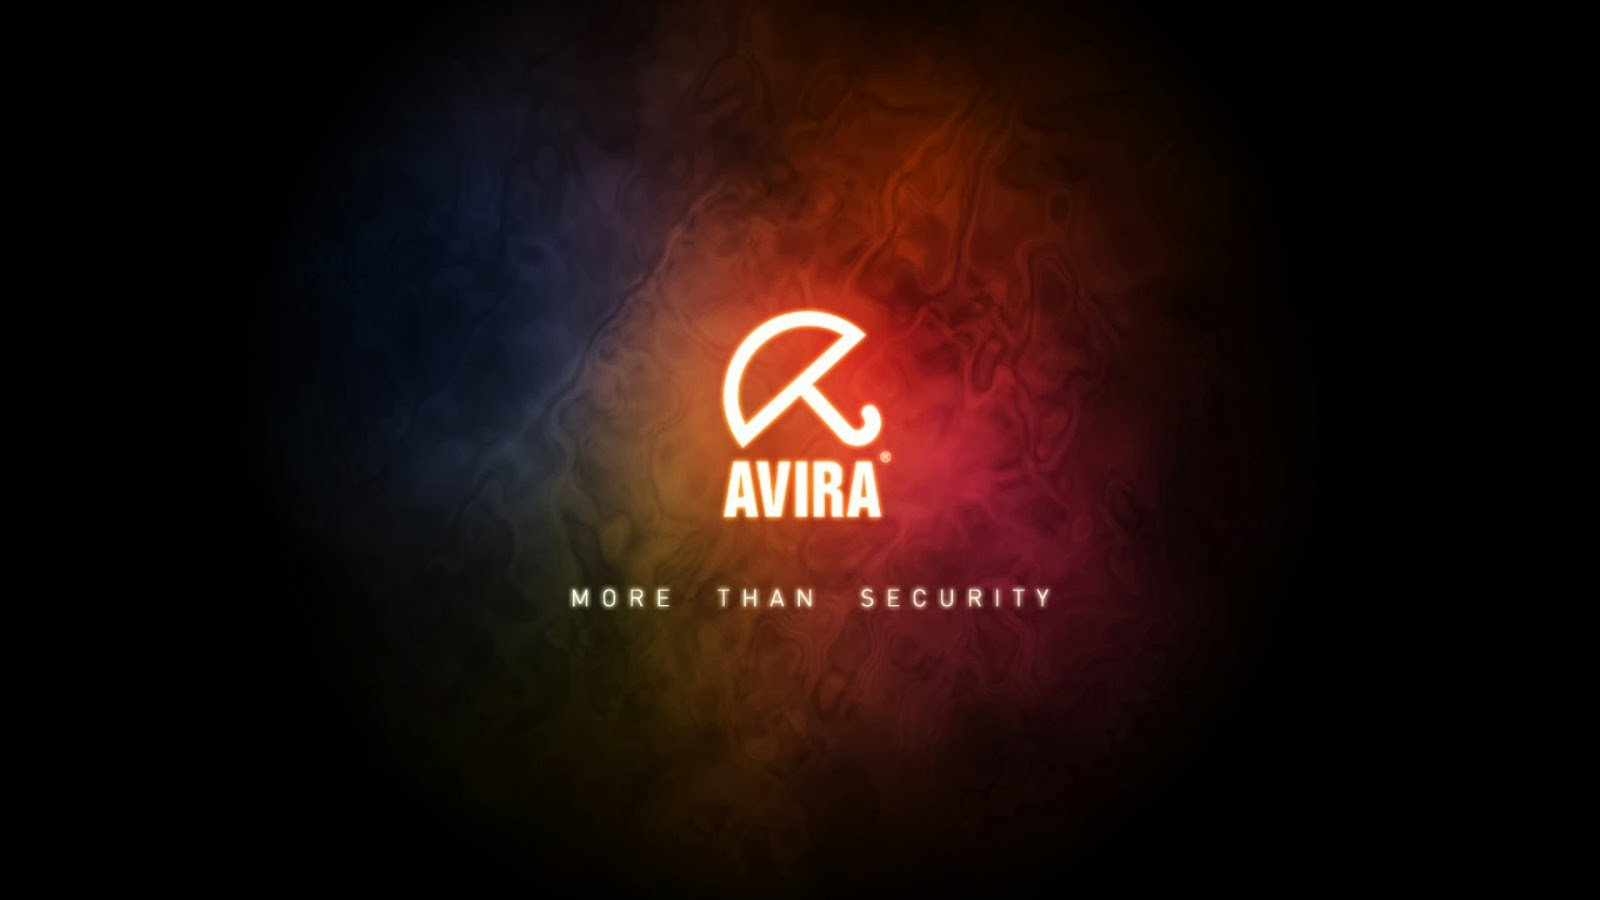 Avira Logo Dark Background u1 HD Wallpaper 1600x900